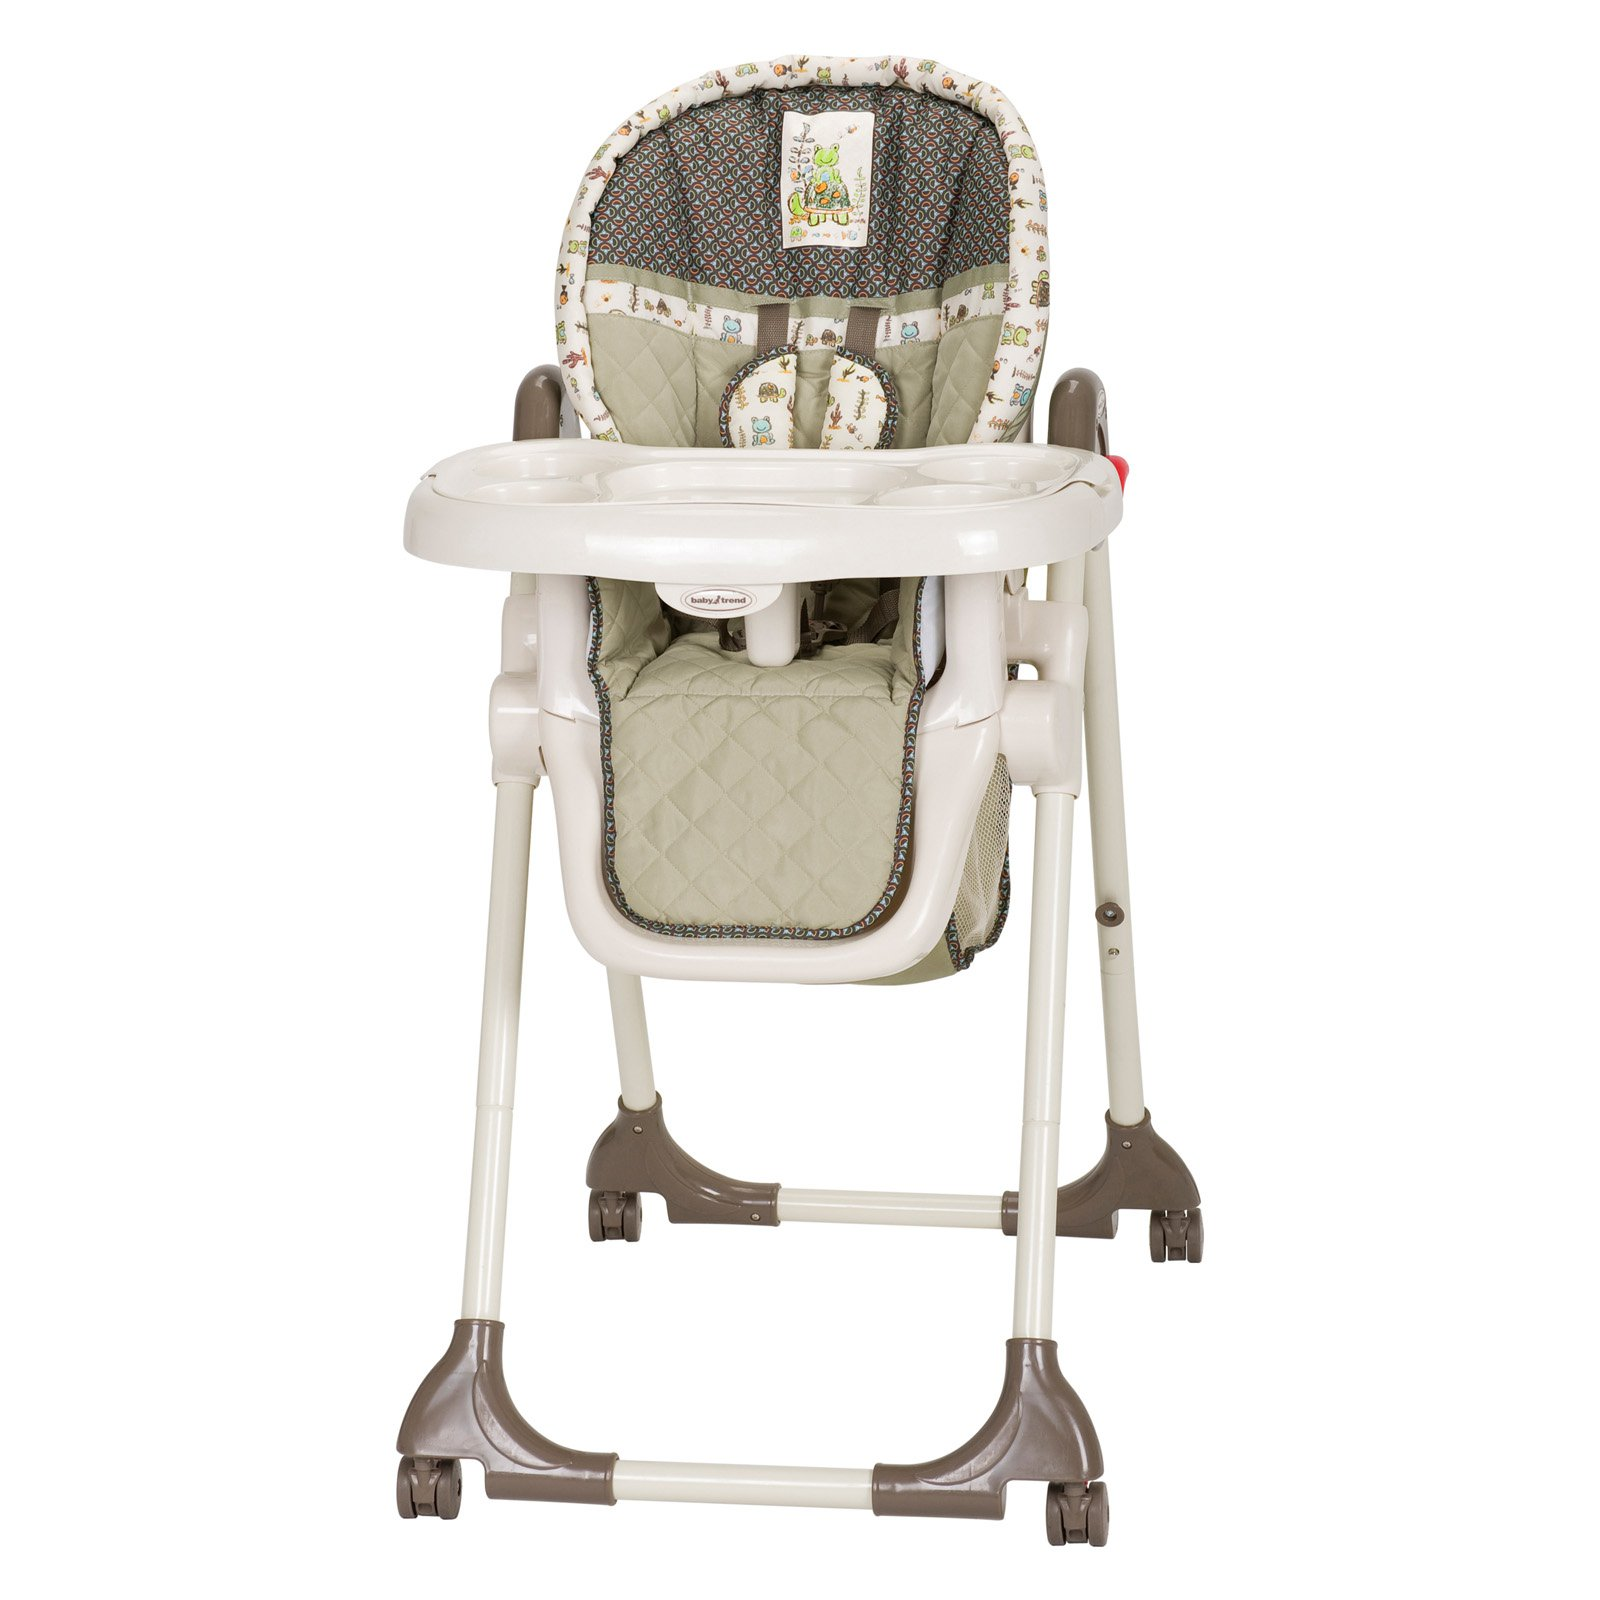 Baby Trend High Chair - Bayou Friends